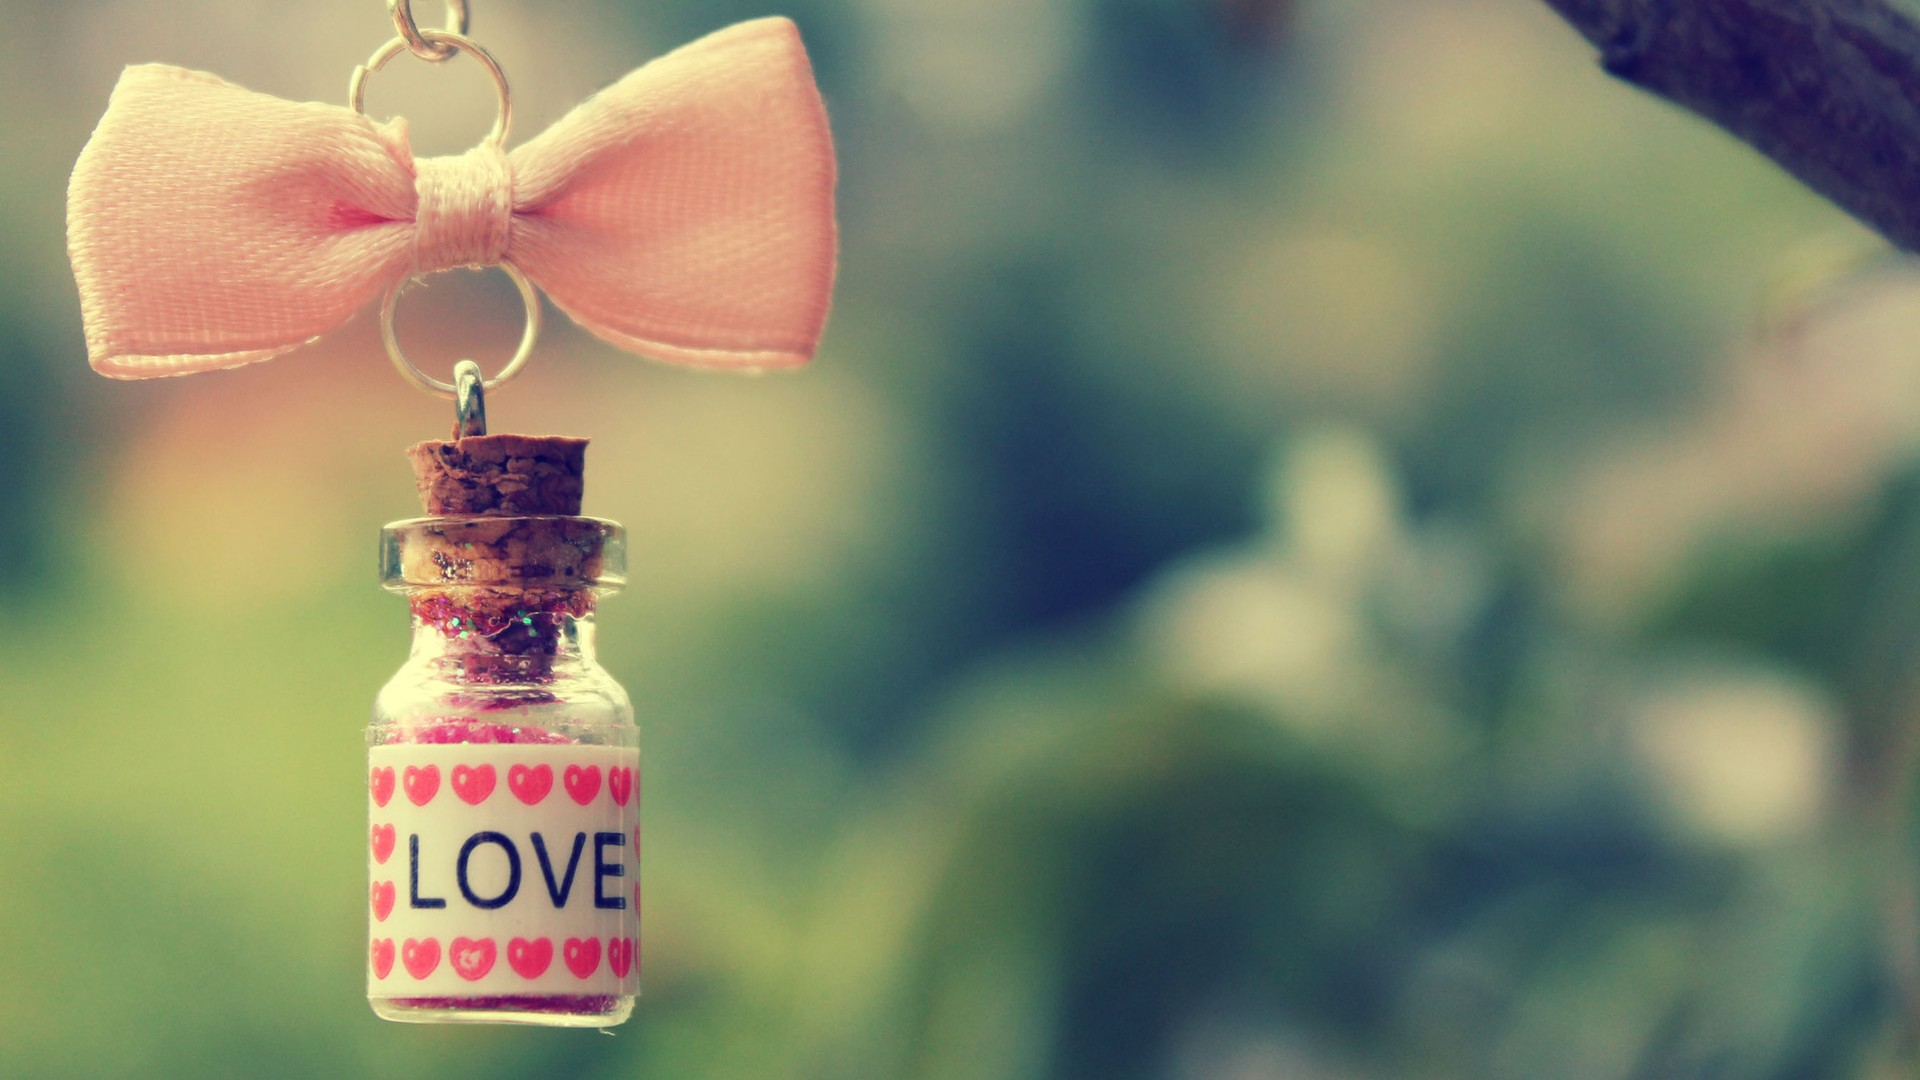 Cute Love Backgrounds for Desktop | Download HD Wallpapers